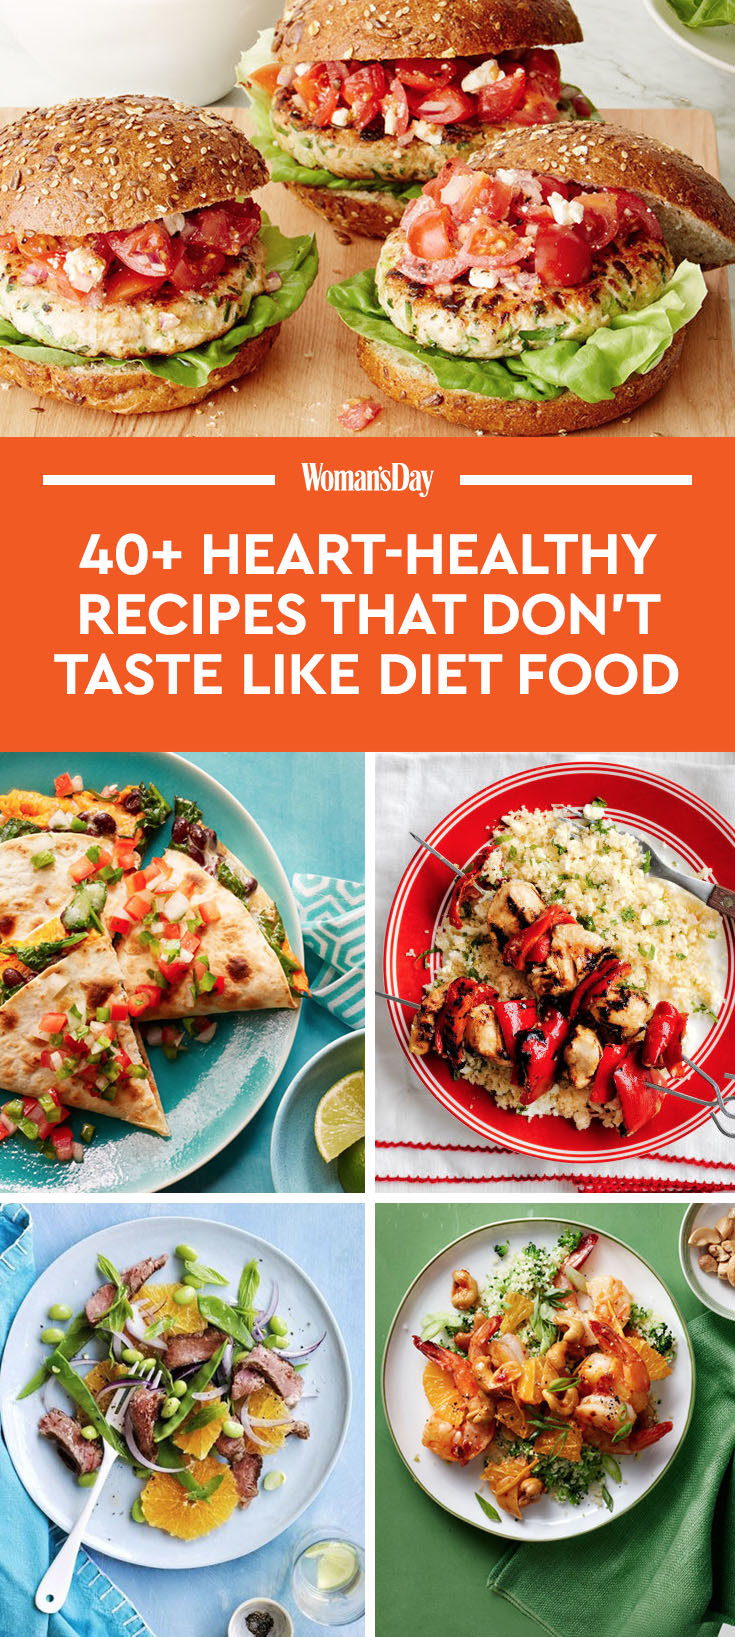 Recipes for Heart Healthy Meals the 20 Best Ideas for 55 Heart Healthy Dinner Recipes that Don T Taste Like Diet